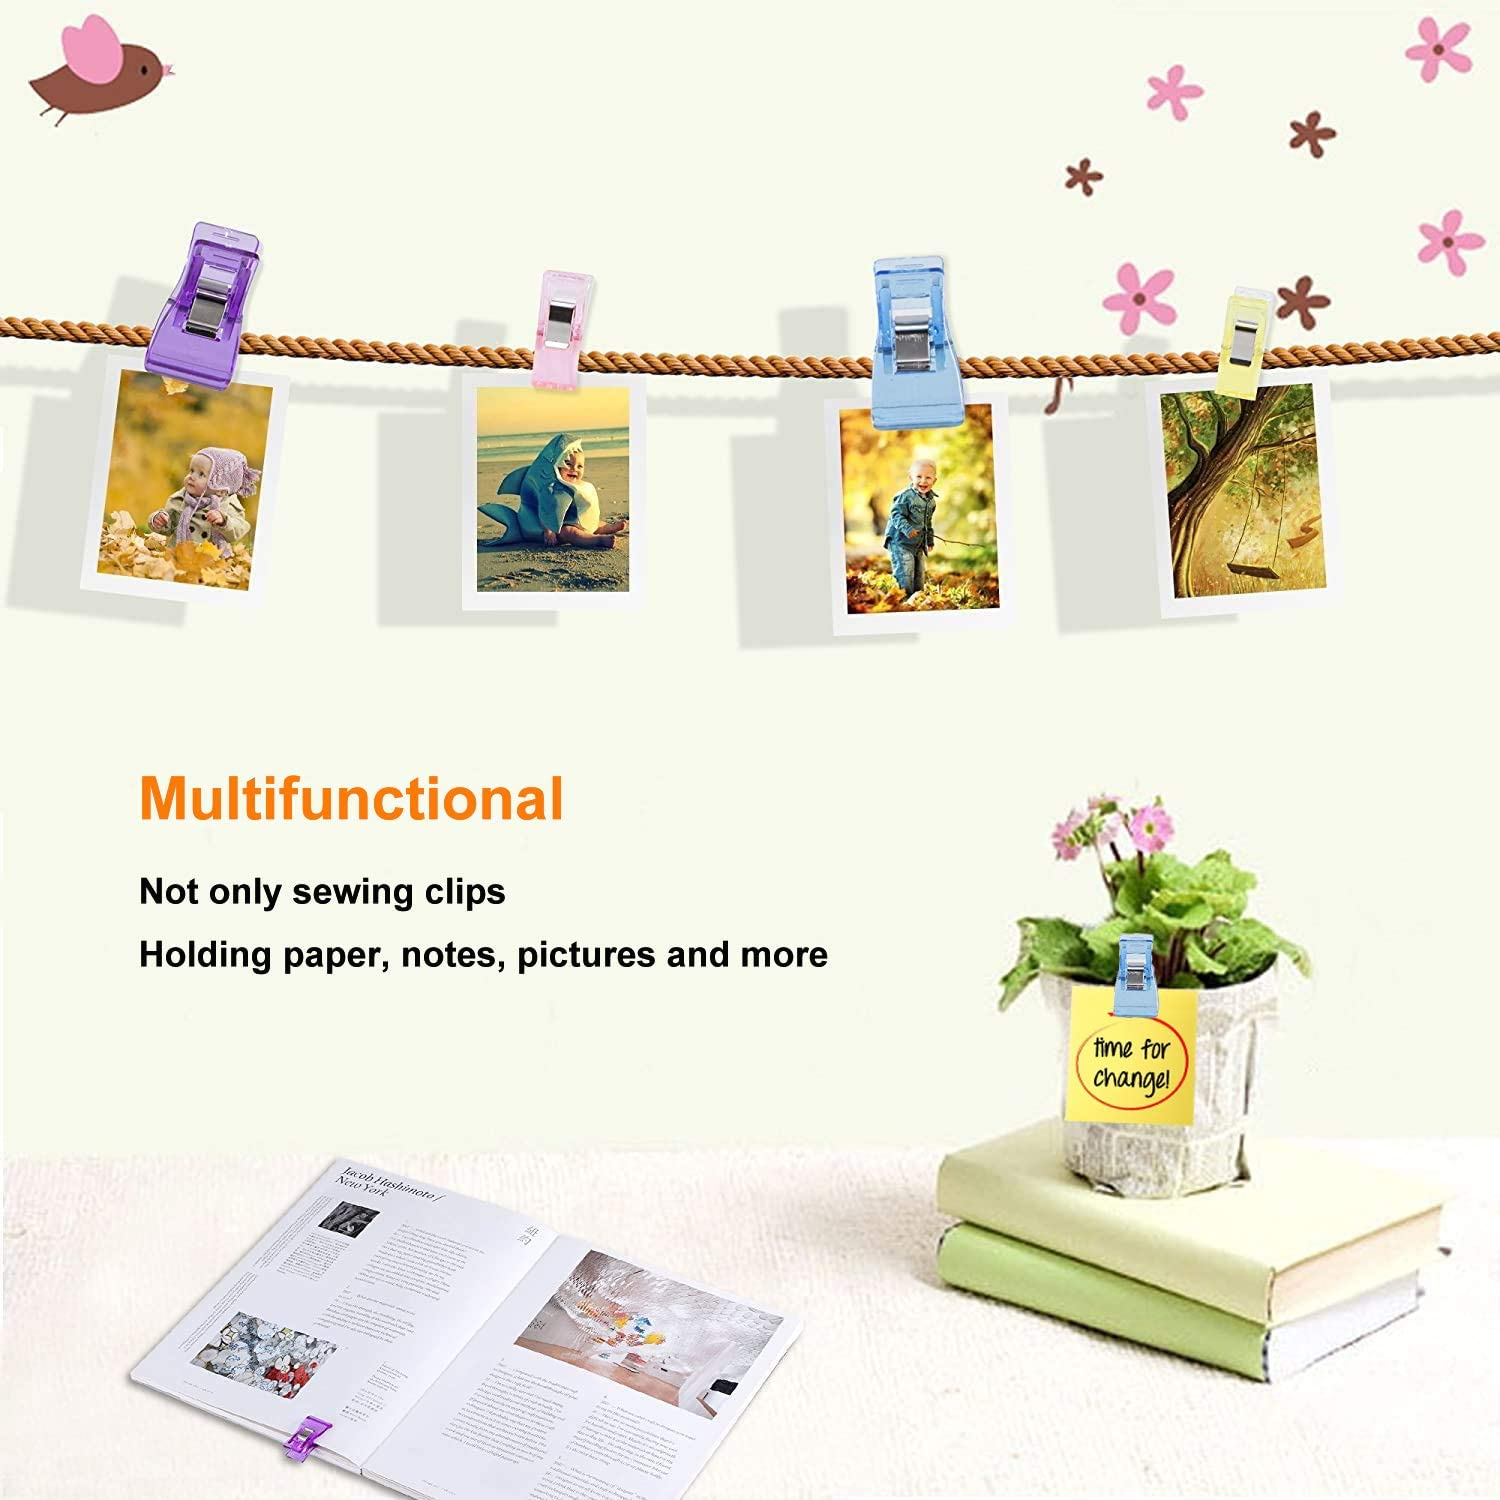 Sewing Clips and Quilting Clips,100 pcs Sewing Fabric Clips with Wedding Tin Box Package Perfect for Sewing Binding,Crafts,Paper Work and Hanging Little Things